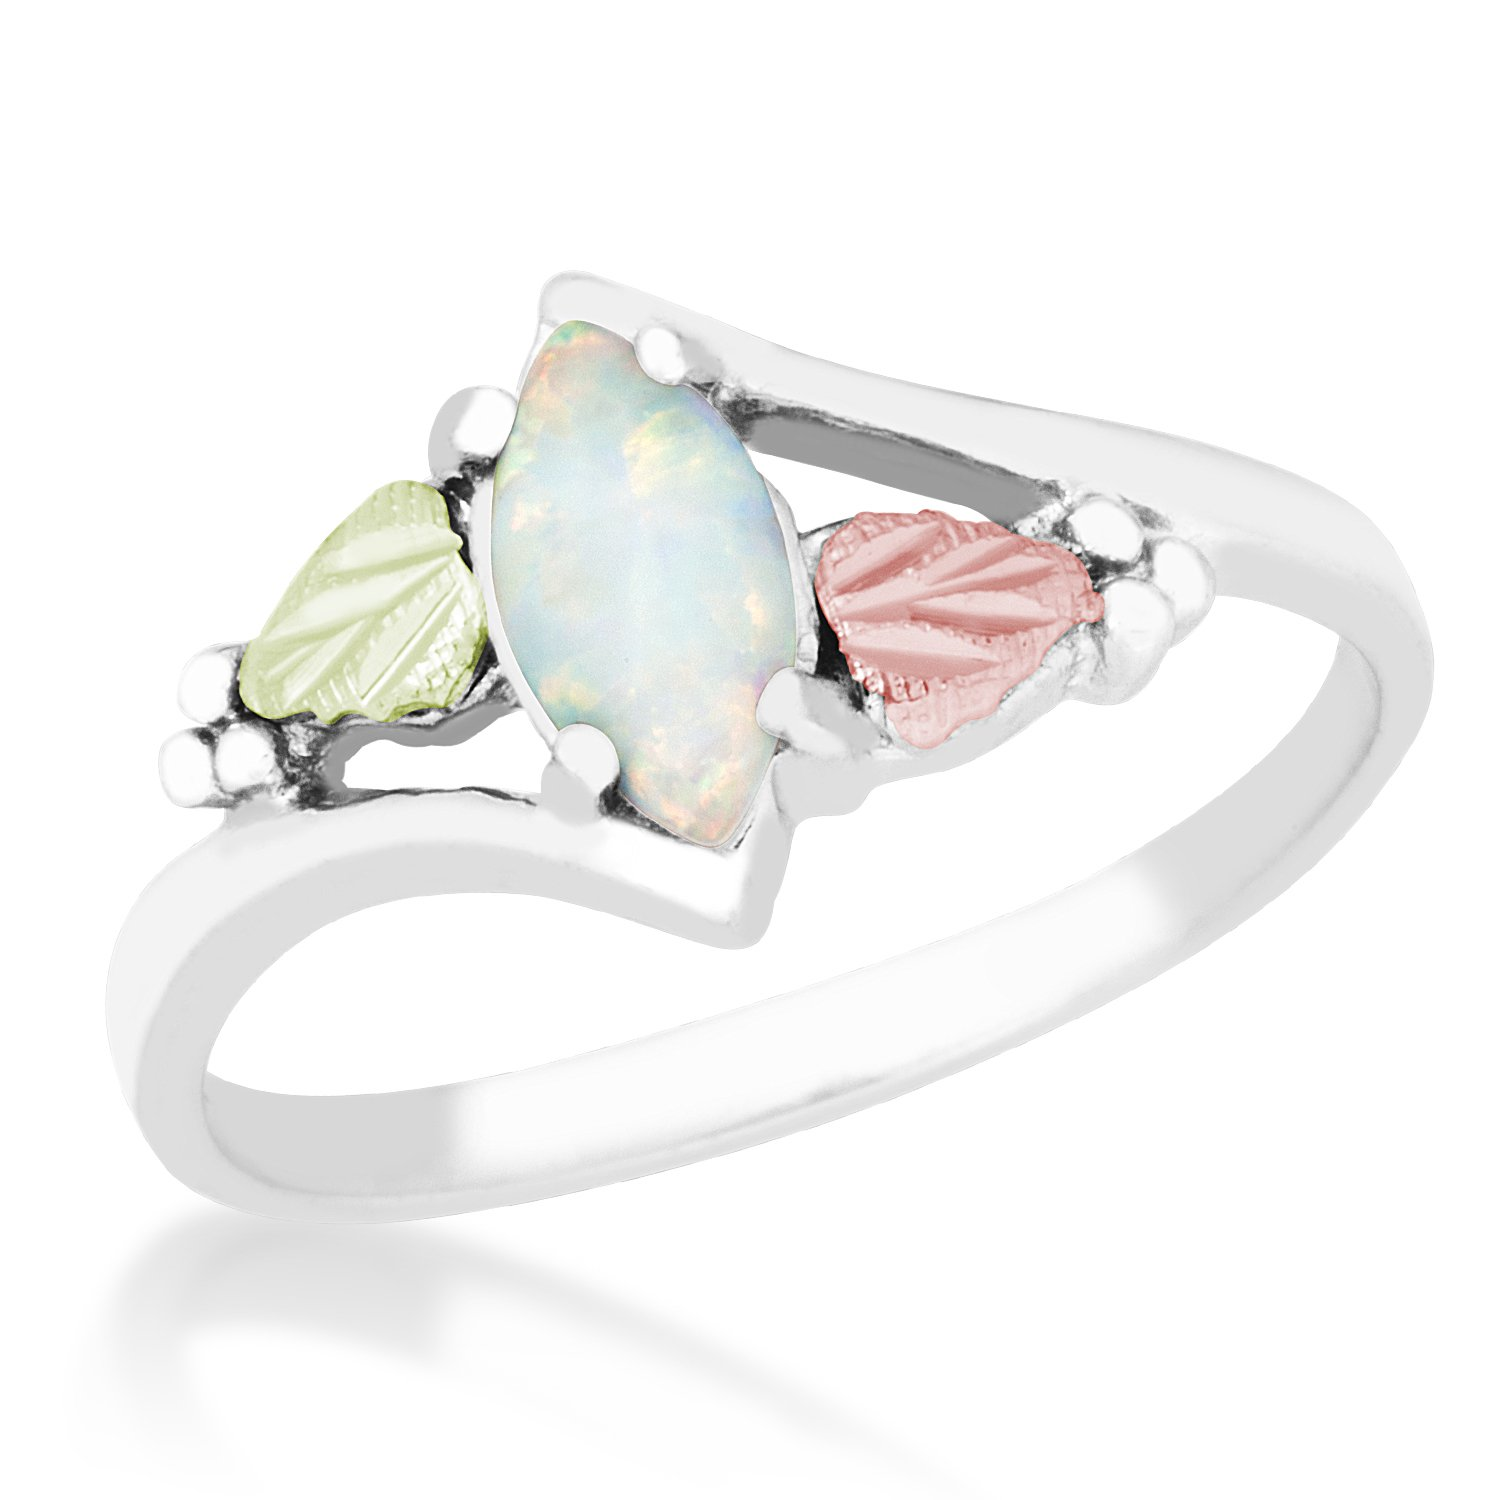 Created Opal Marquise Cabochon Bypass Ring, Sterling Silver, 12k Gold Pink and Green Gold, Size 5.5